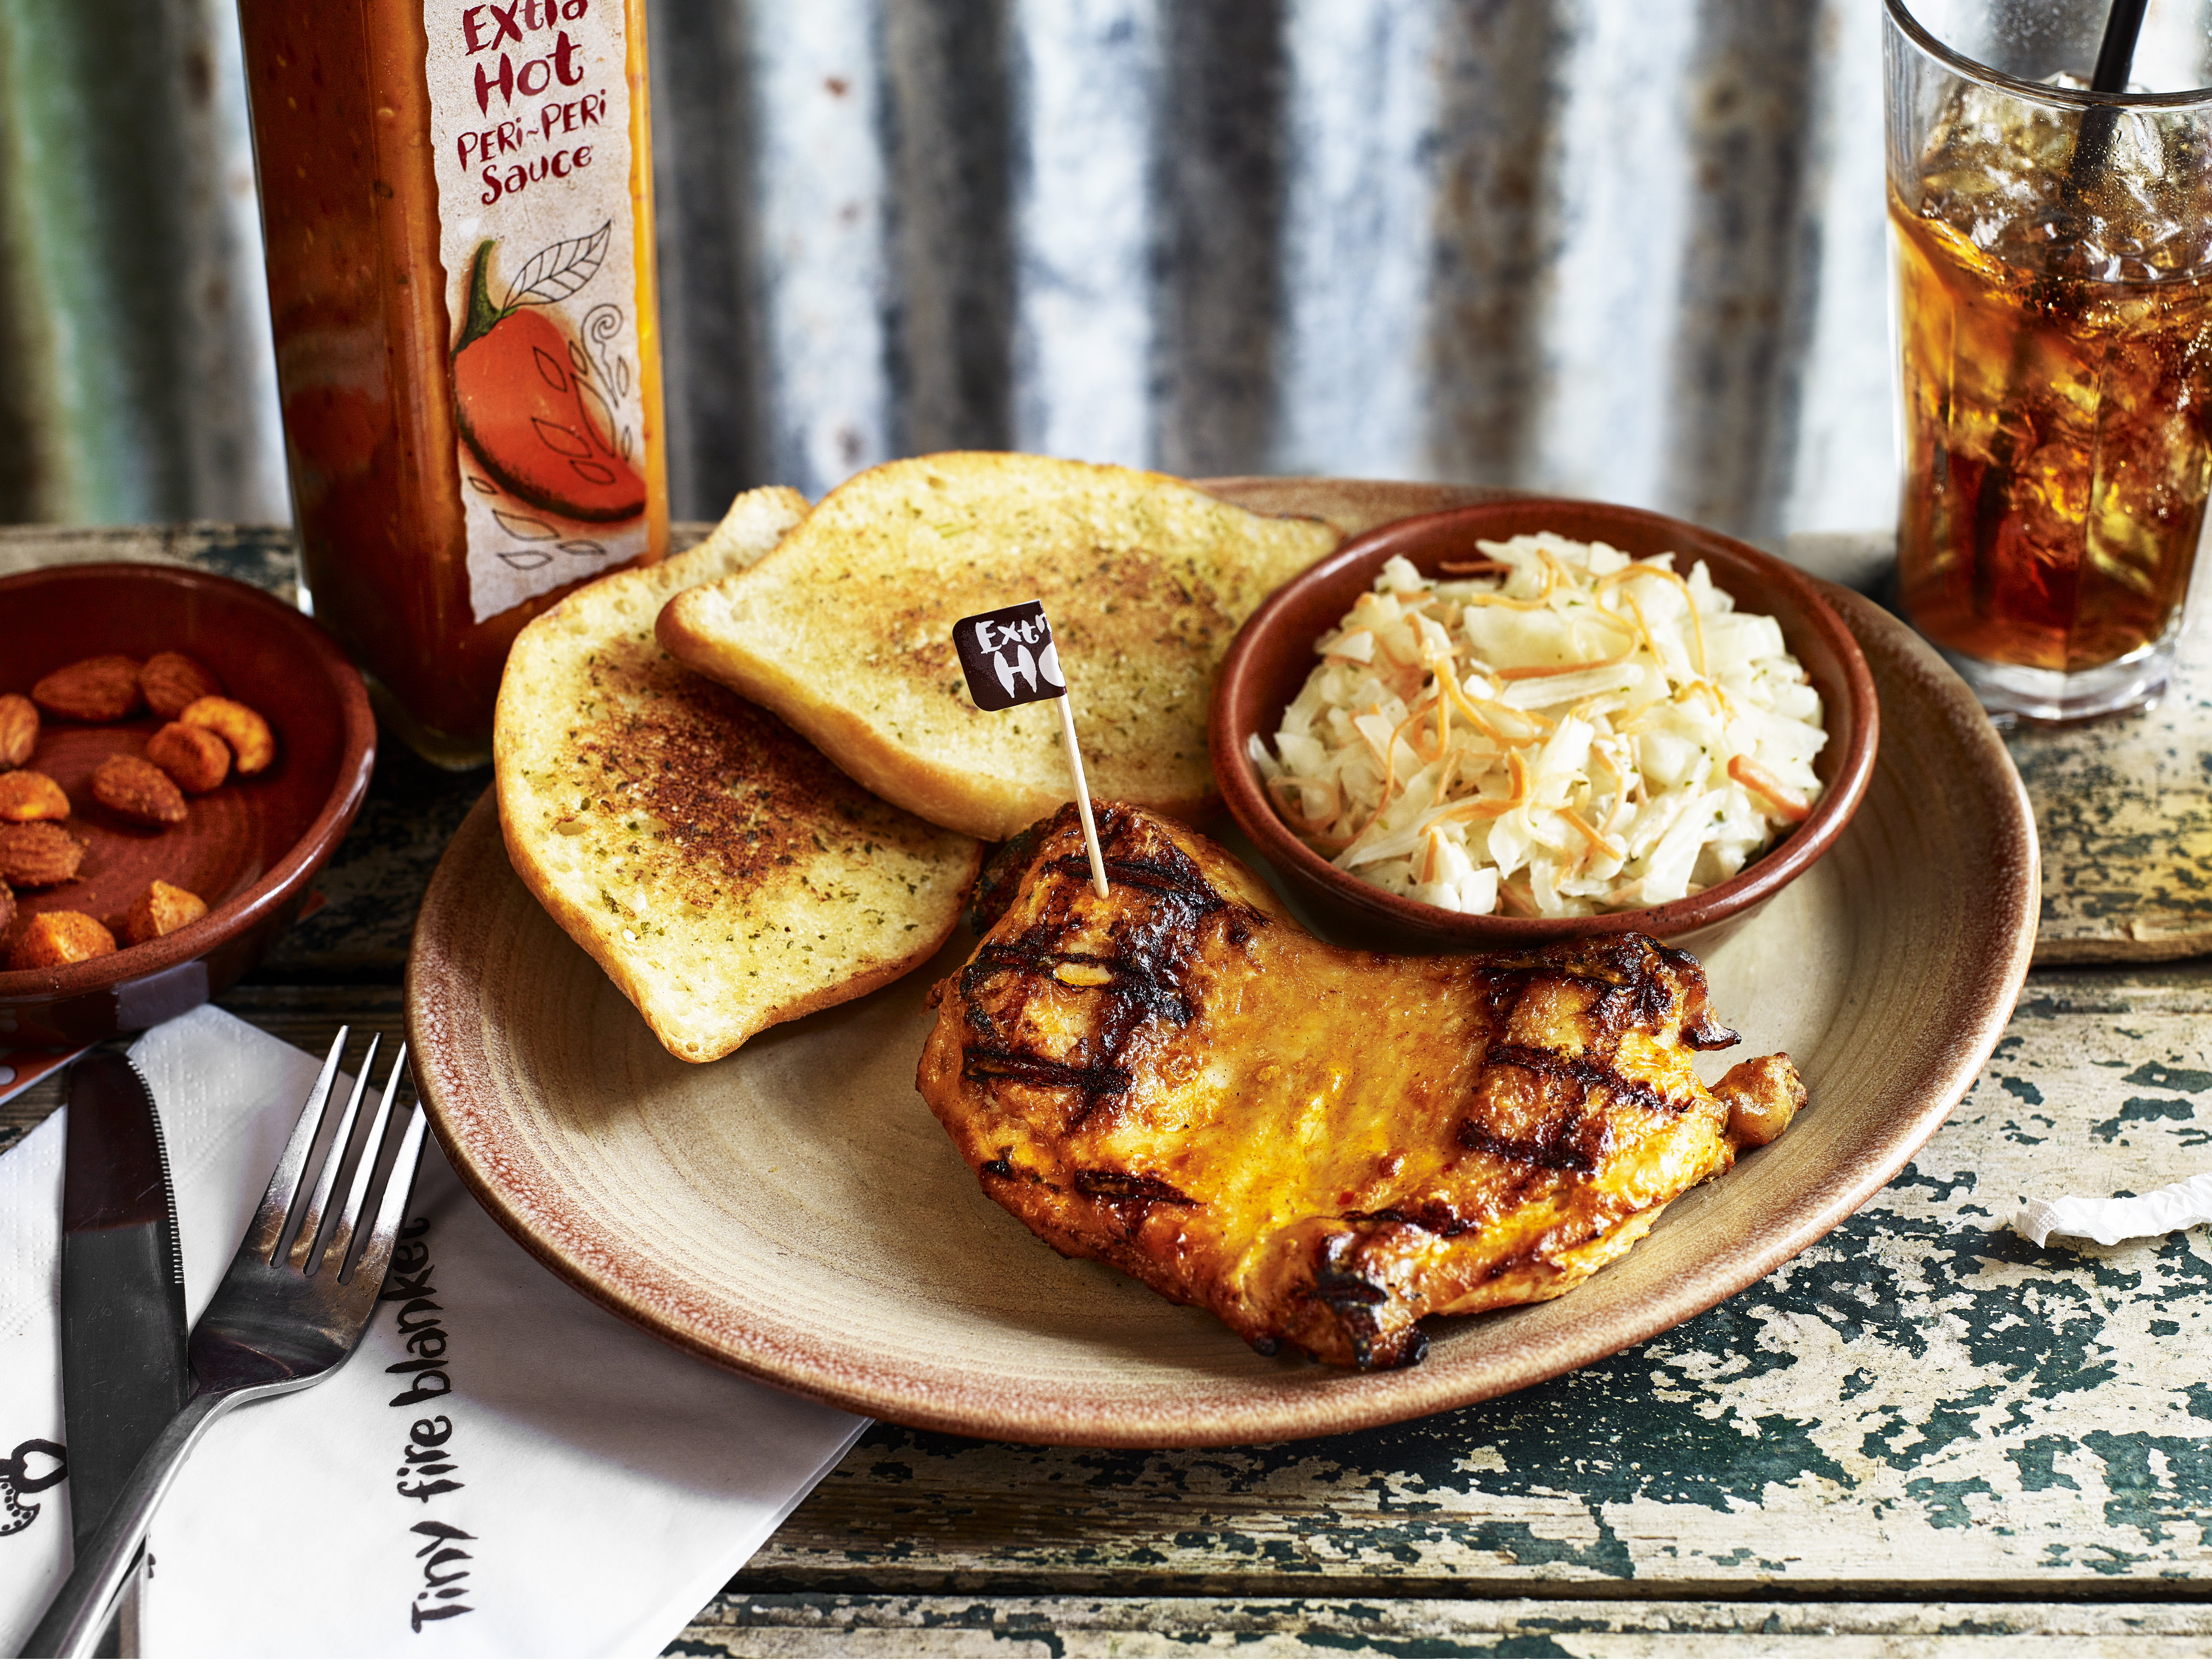 A new competition is set to offer free chicken. Credit: Nando's